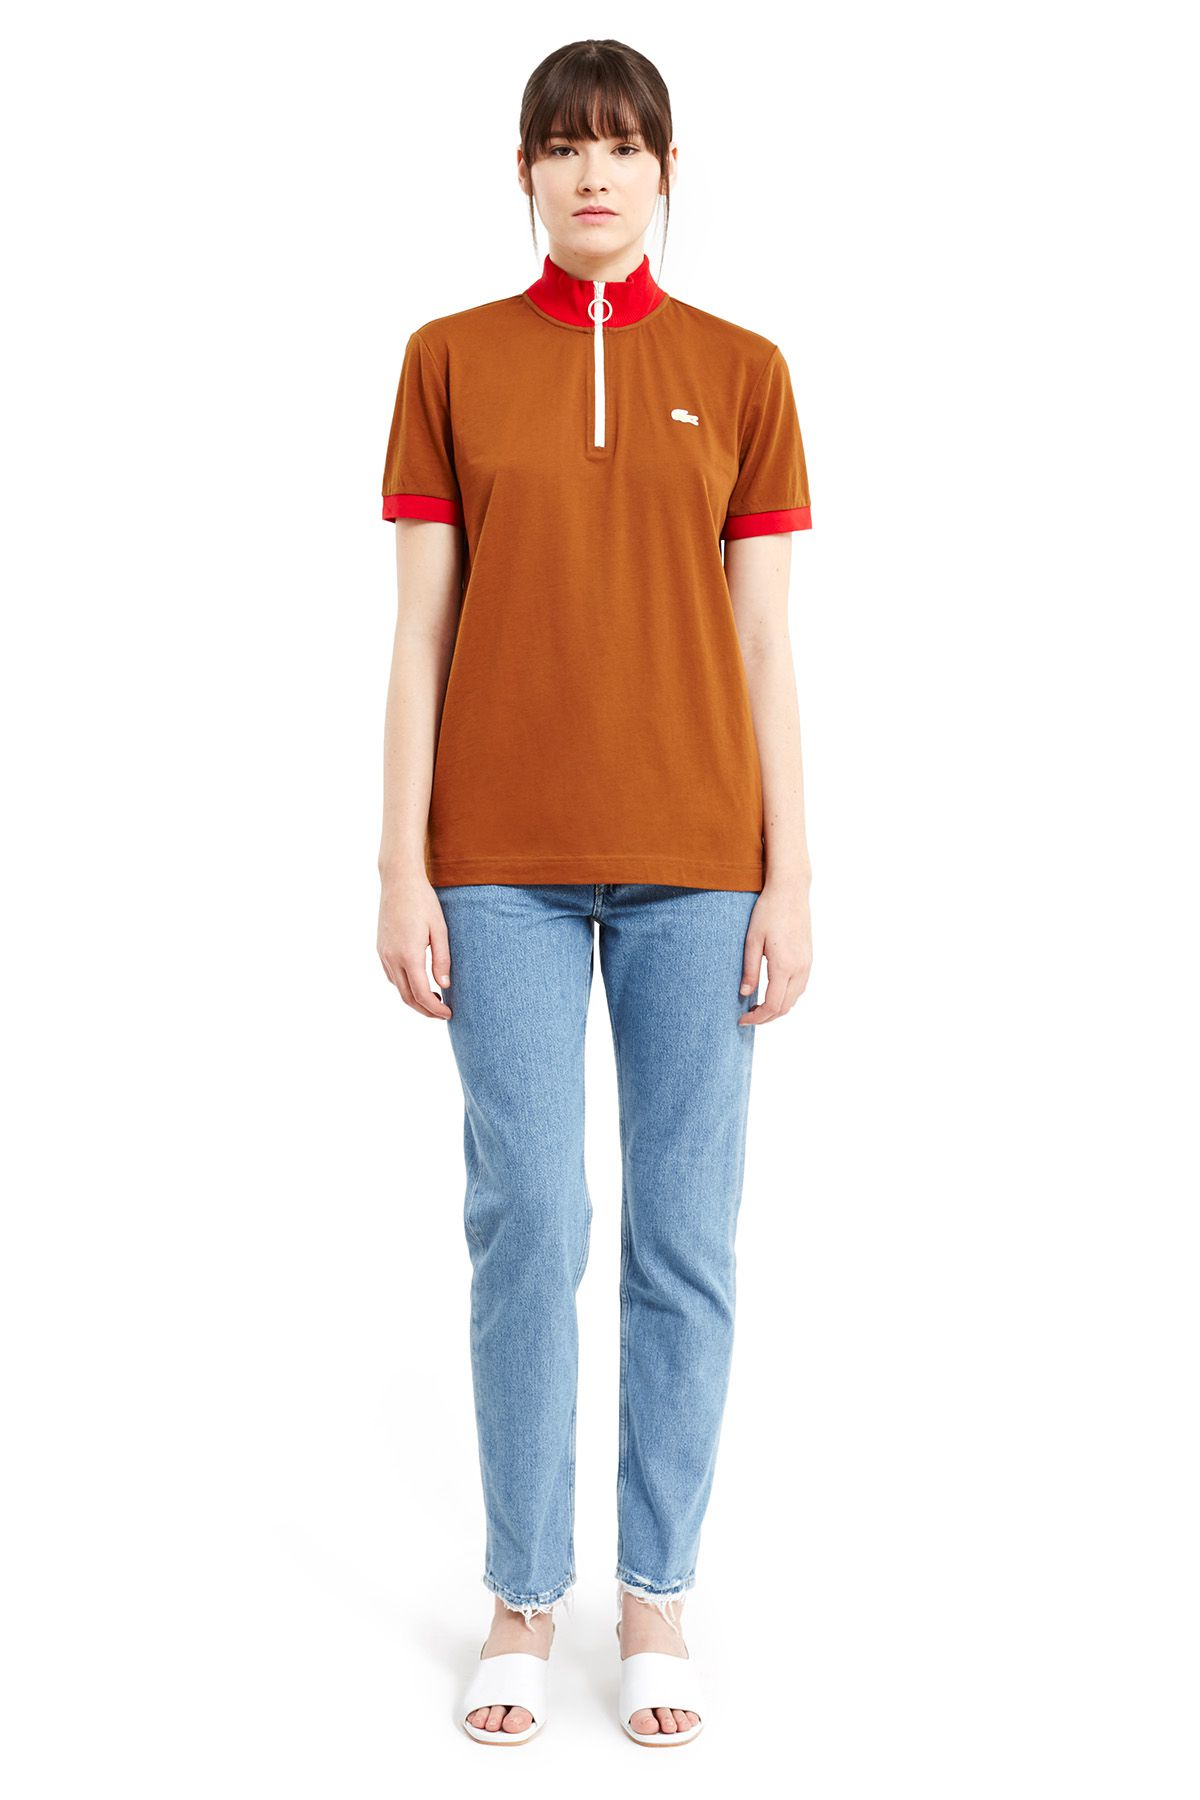 Lacoste x Opening Ceremony brown and red mock neck